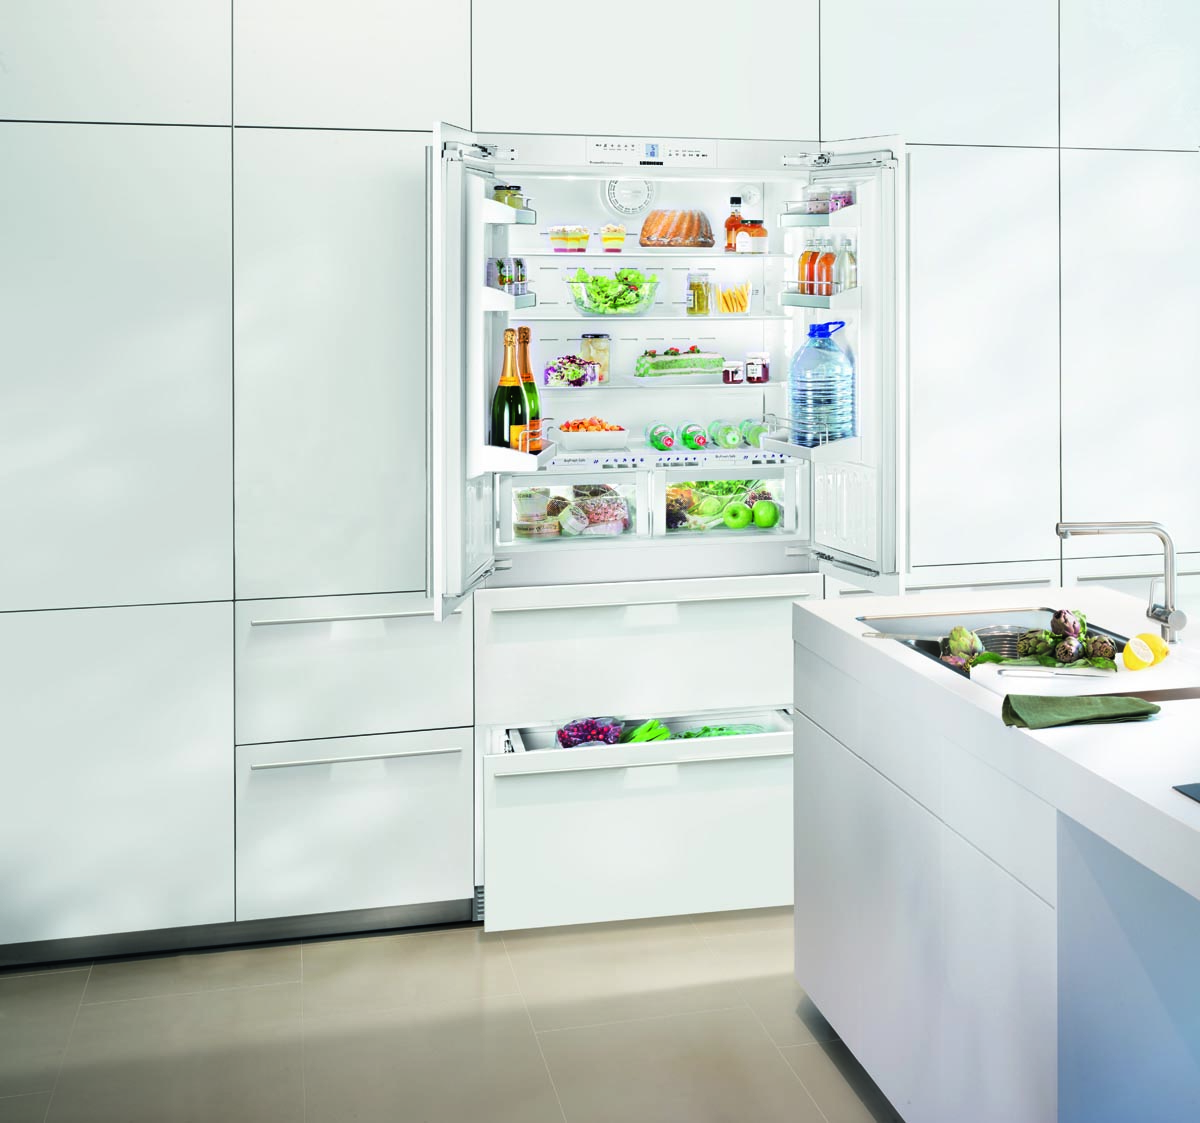 French Door Refrigerators: Everything You Need To Know - FreshMAGAZINE